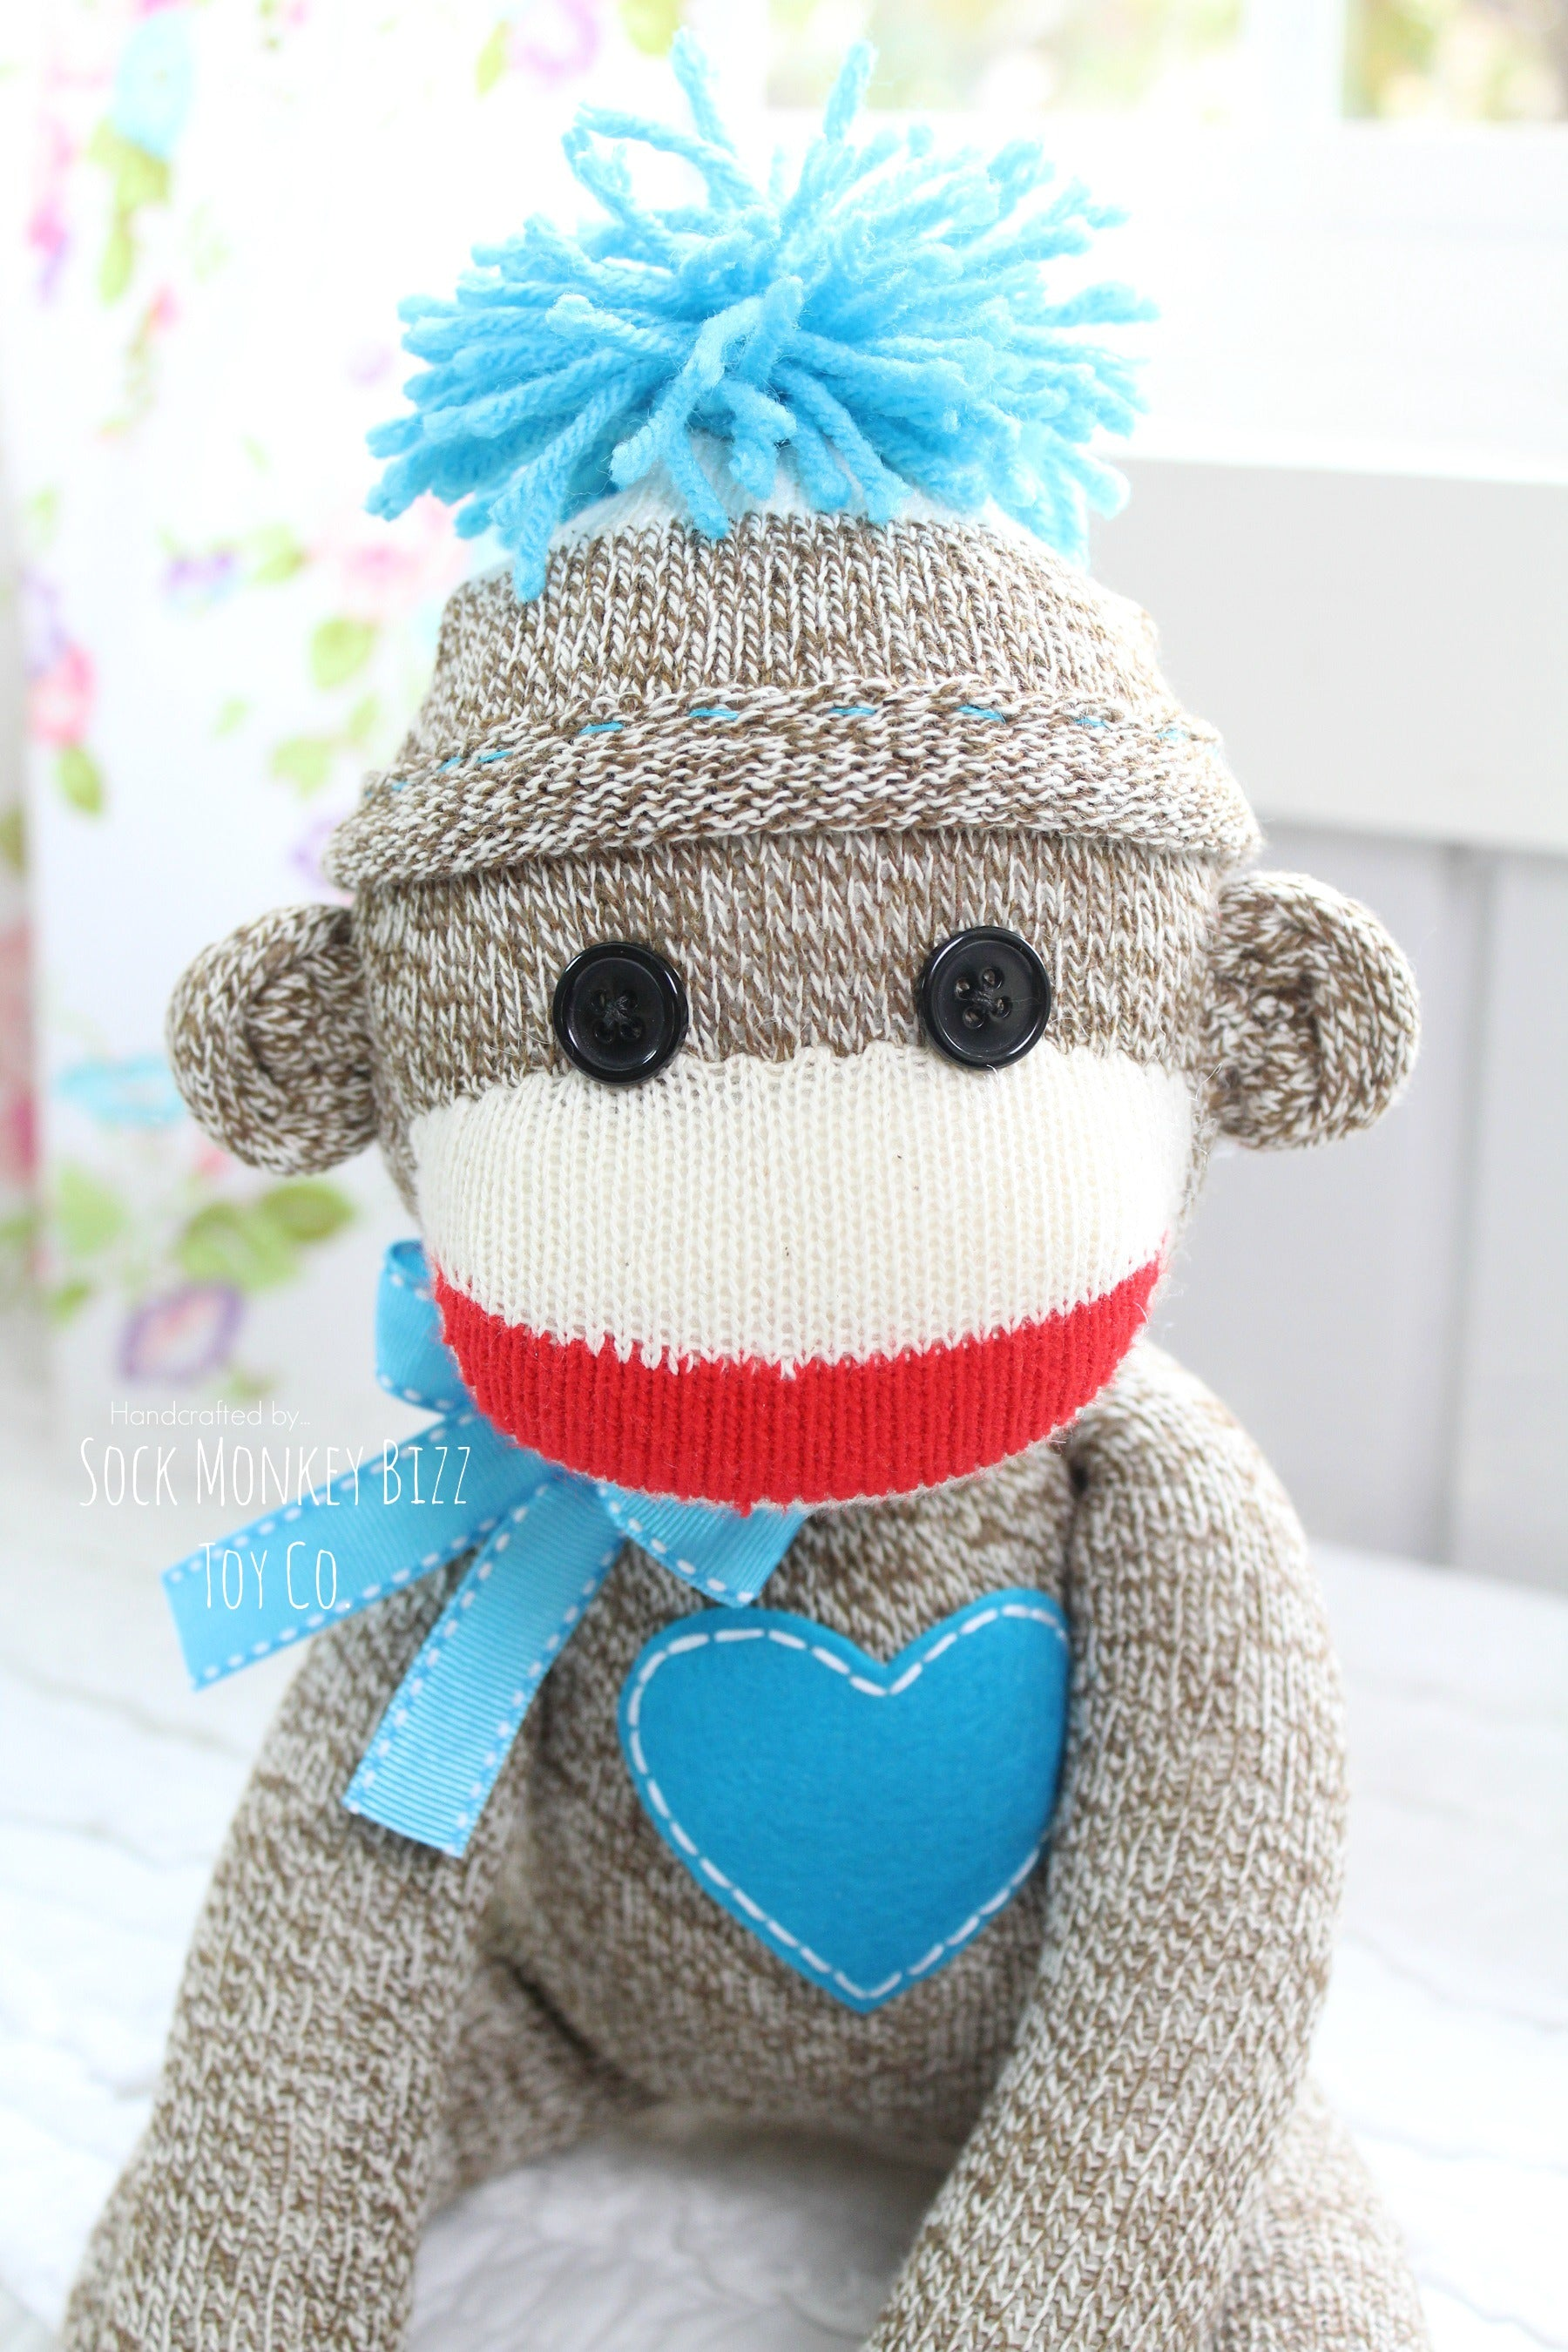 Handcrafted Classic Traditional Sock Monkey Doll, Turquoise